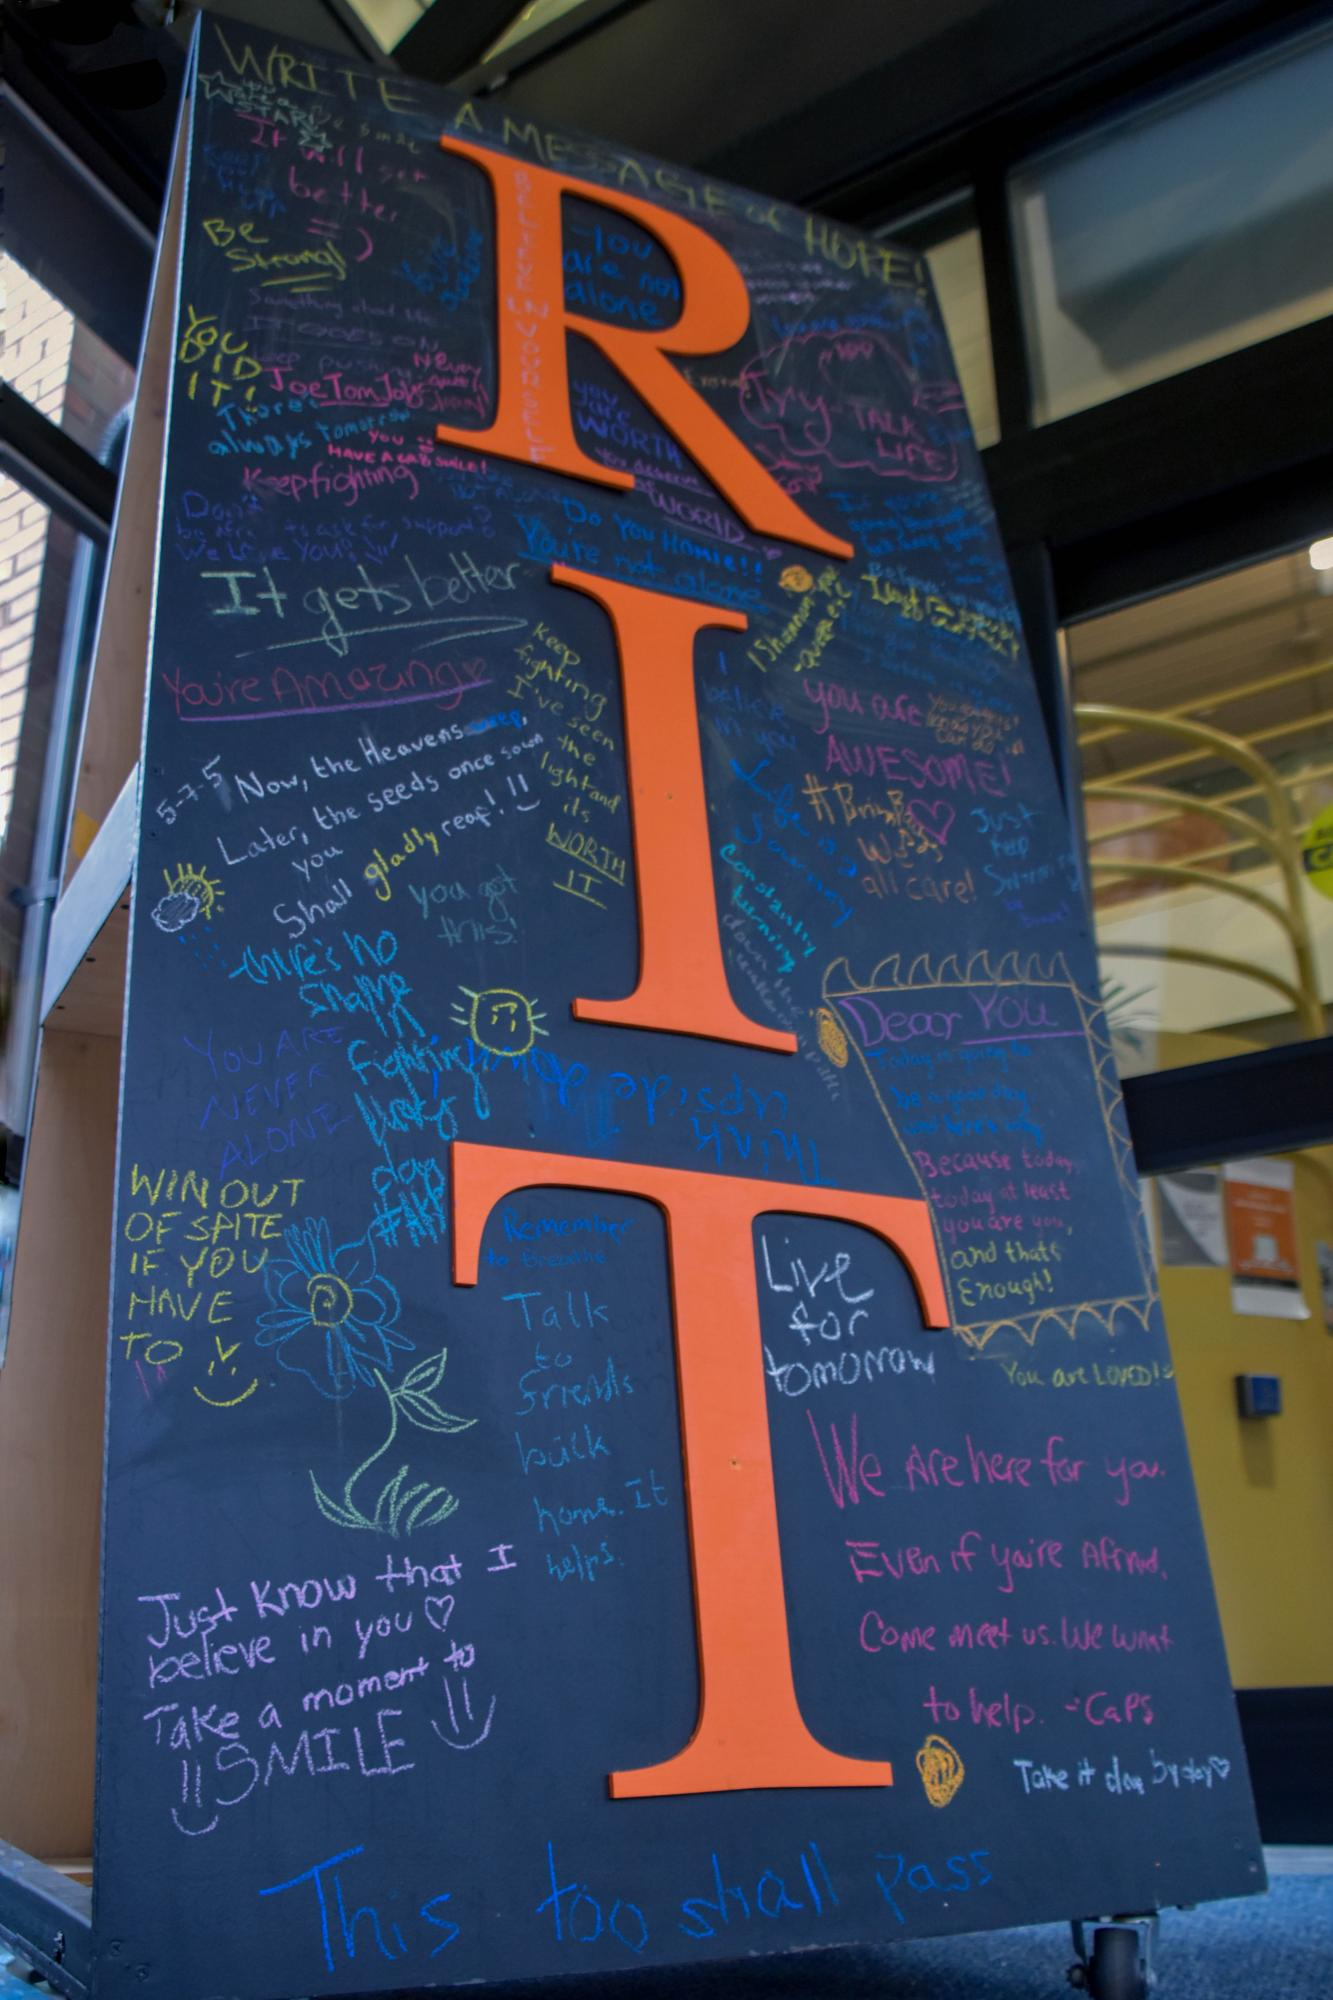 A blackboard outside August Center in Henrietta, N.Y. on Dec. 11, 2018. It is filled with filled with positive quotes written by students at RIT. Photo by Tony Wen